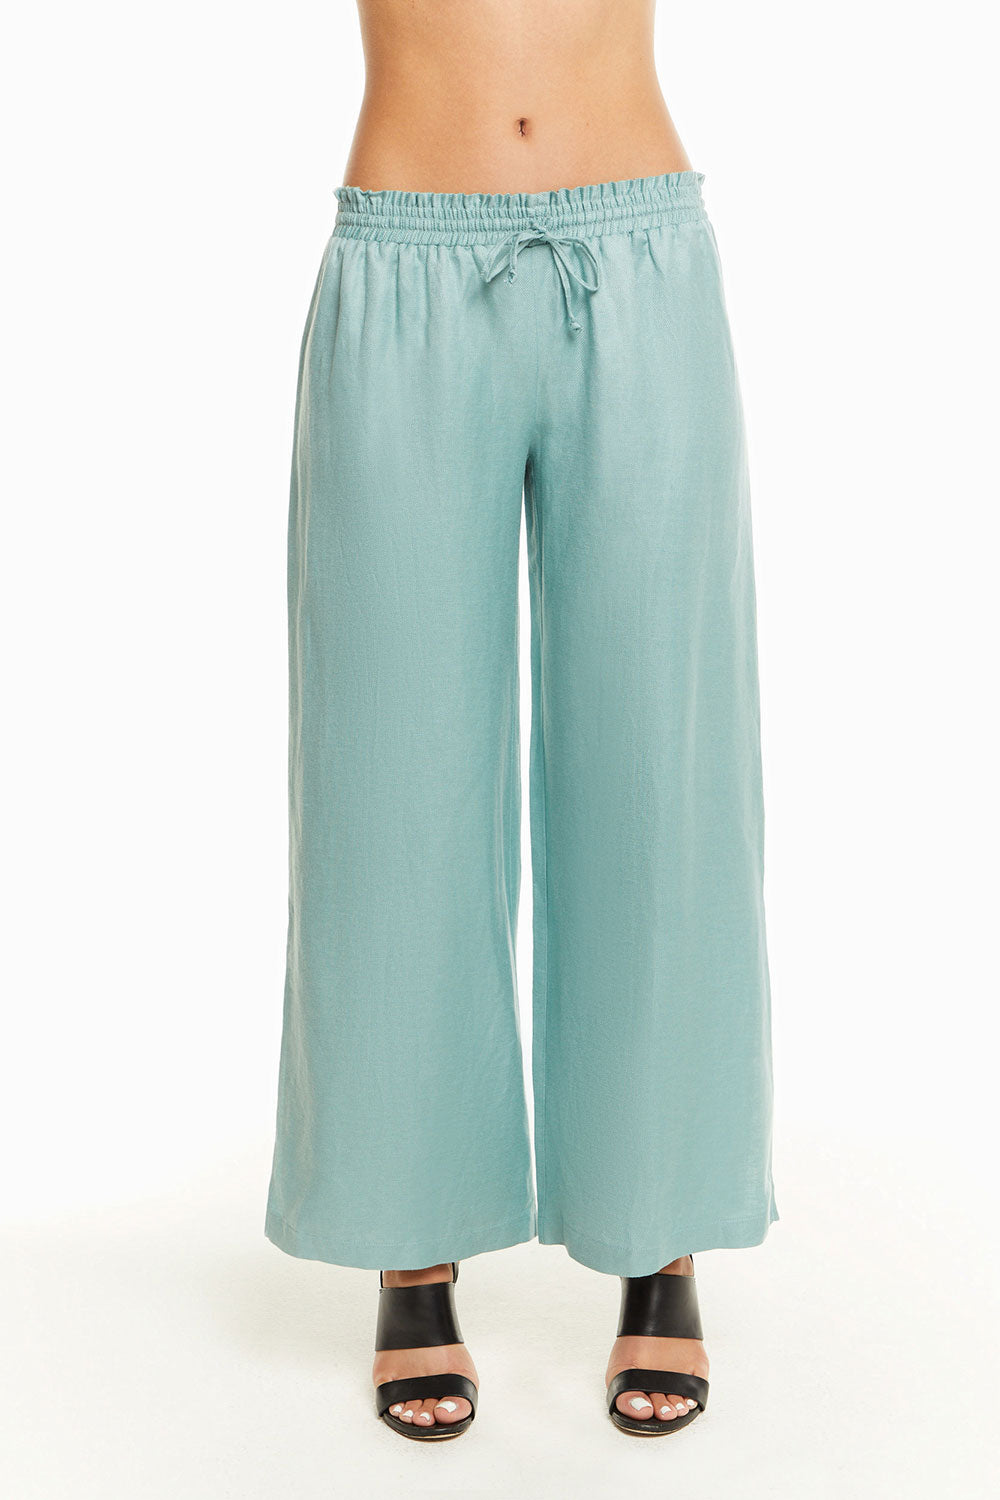 Beachy Linen Paperbag Waist Side Slit Pant, WOMENS, chaserbrand.com,chaser clothing,chaser apparel,chaser los angeles